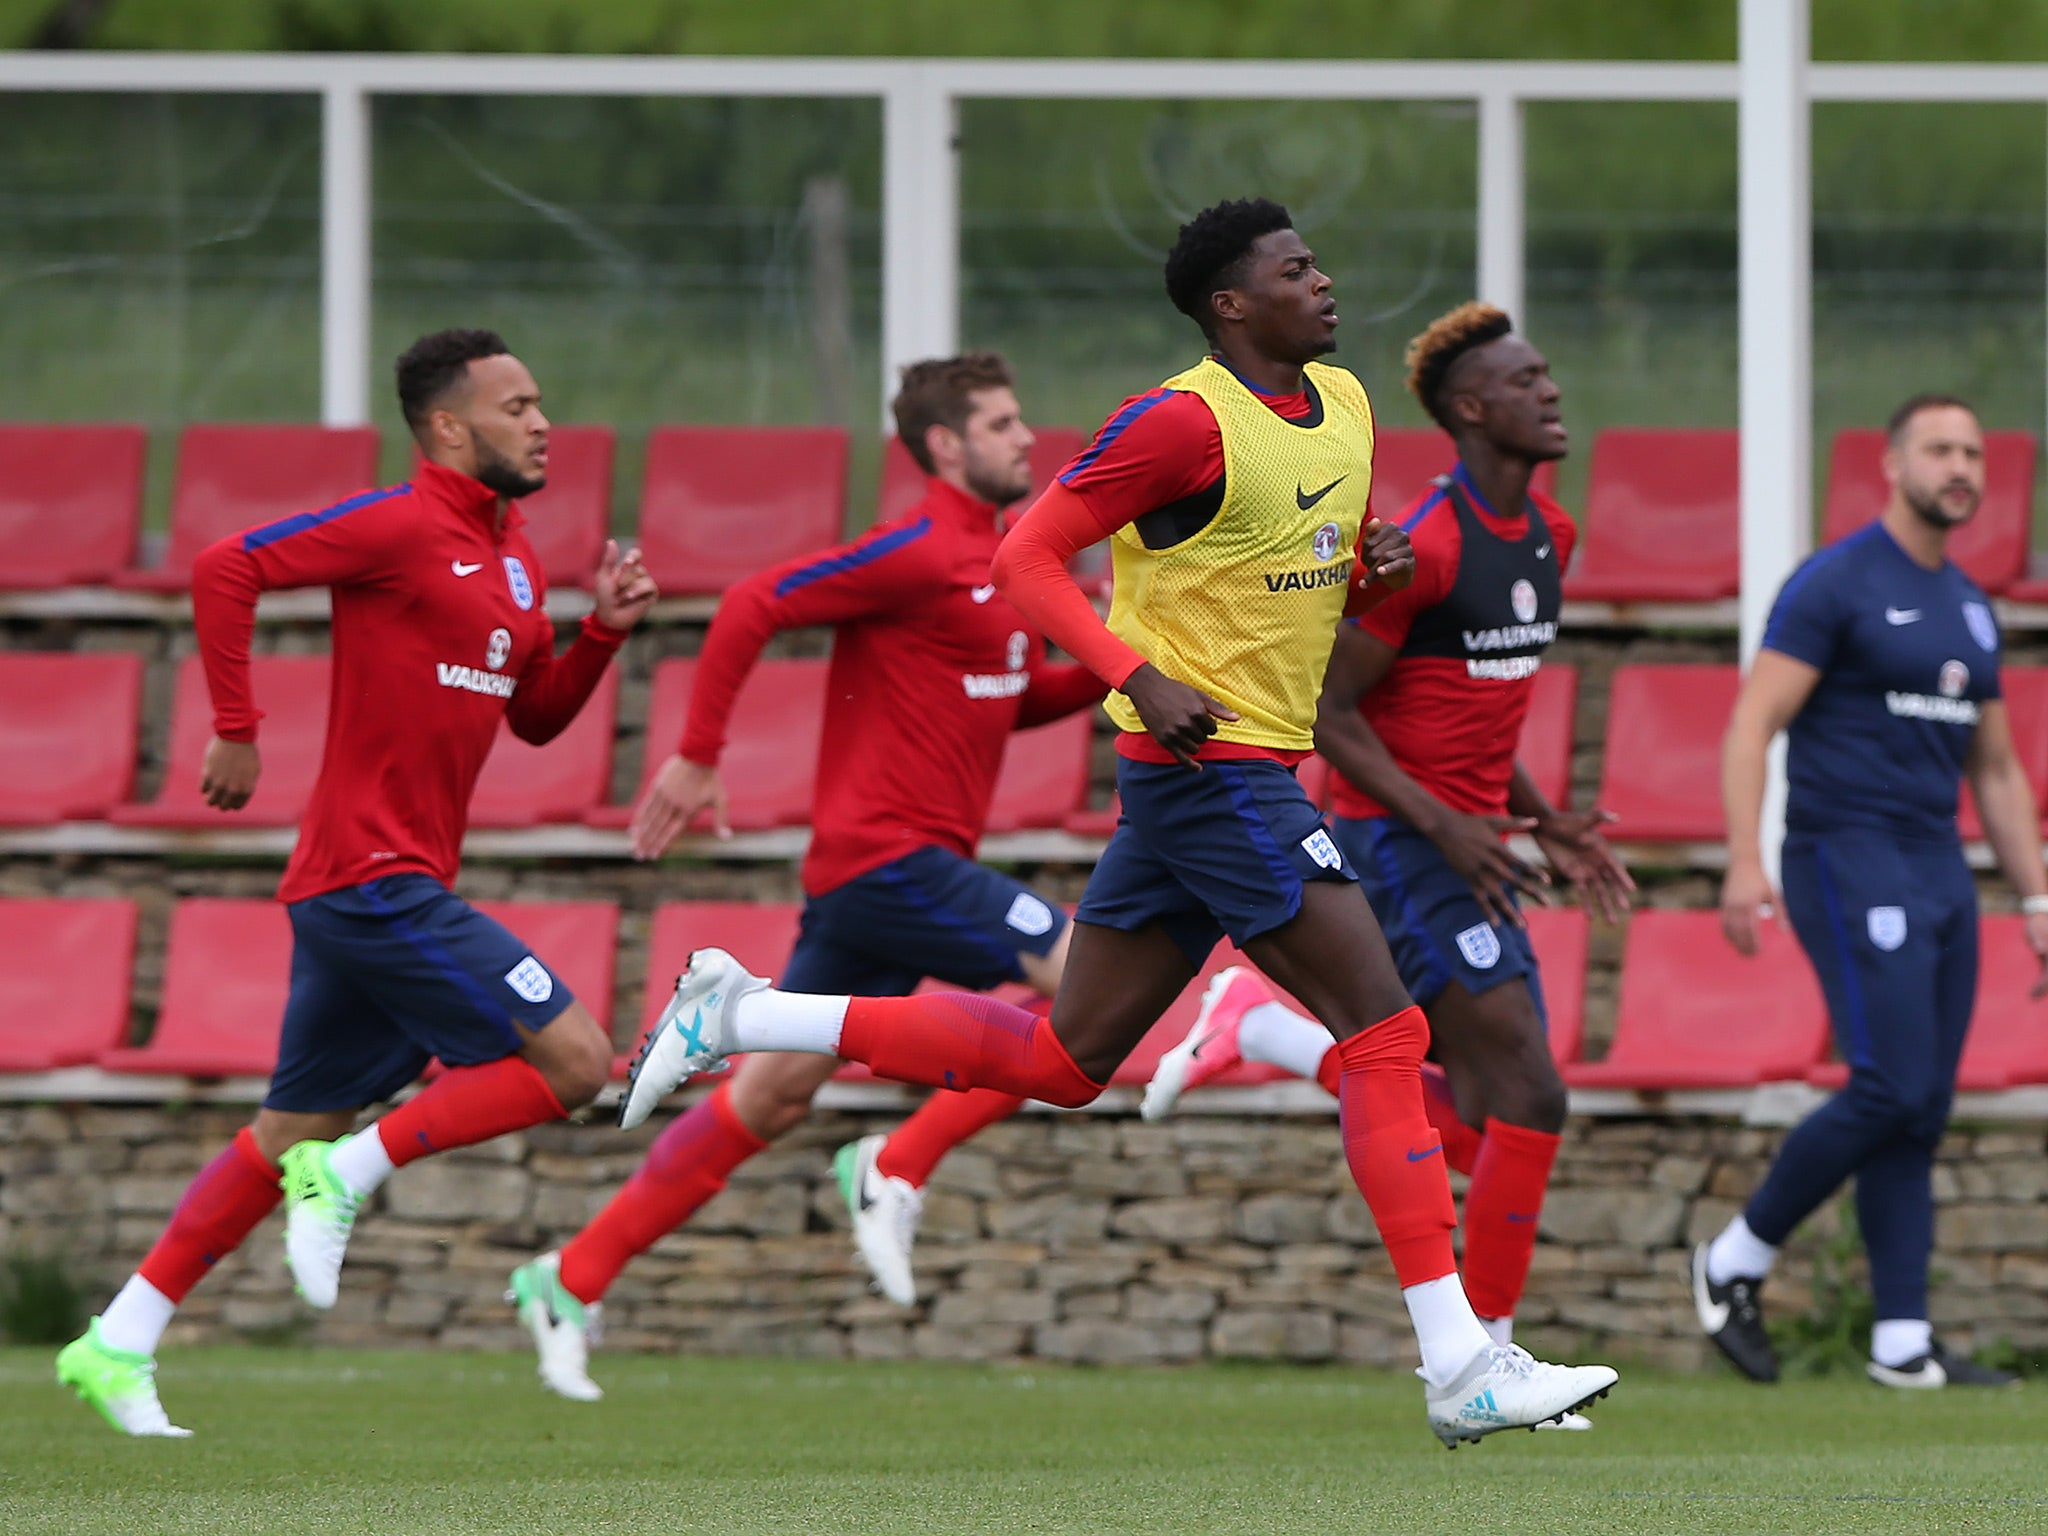 European Under-21 Championship: England hopeful but Spain and Portugal likely to prove too strong